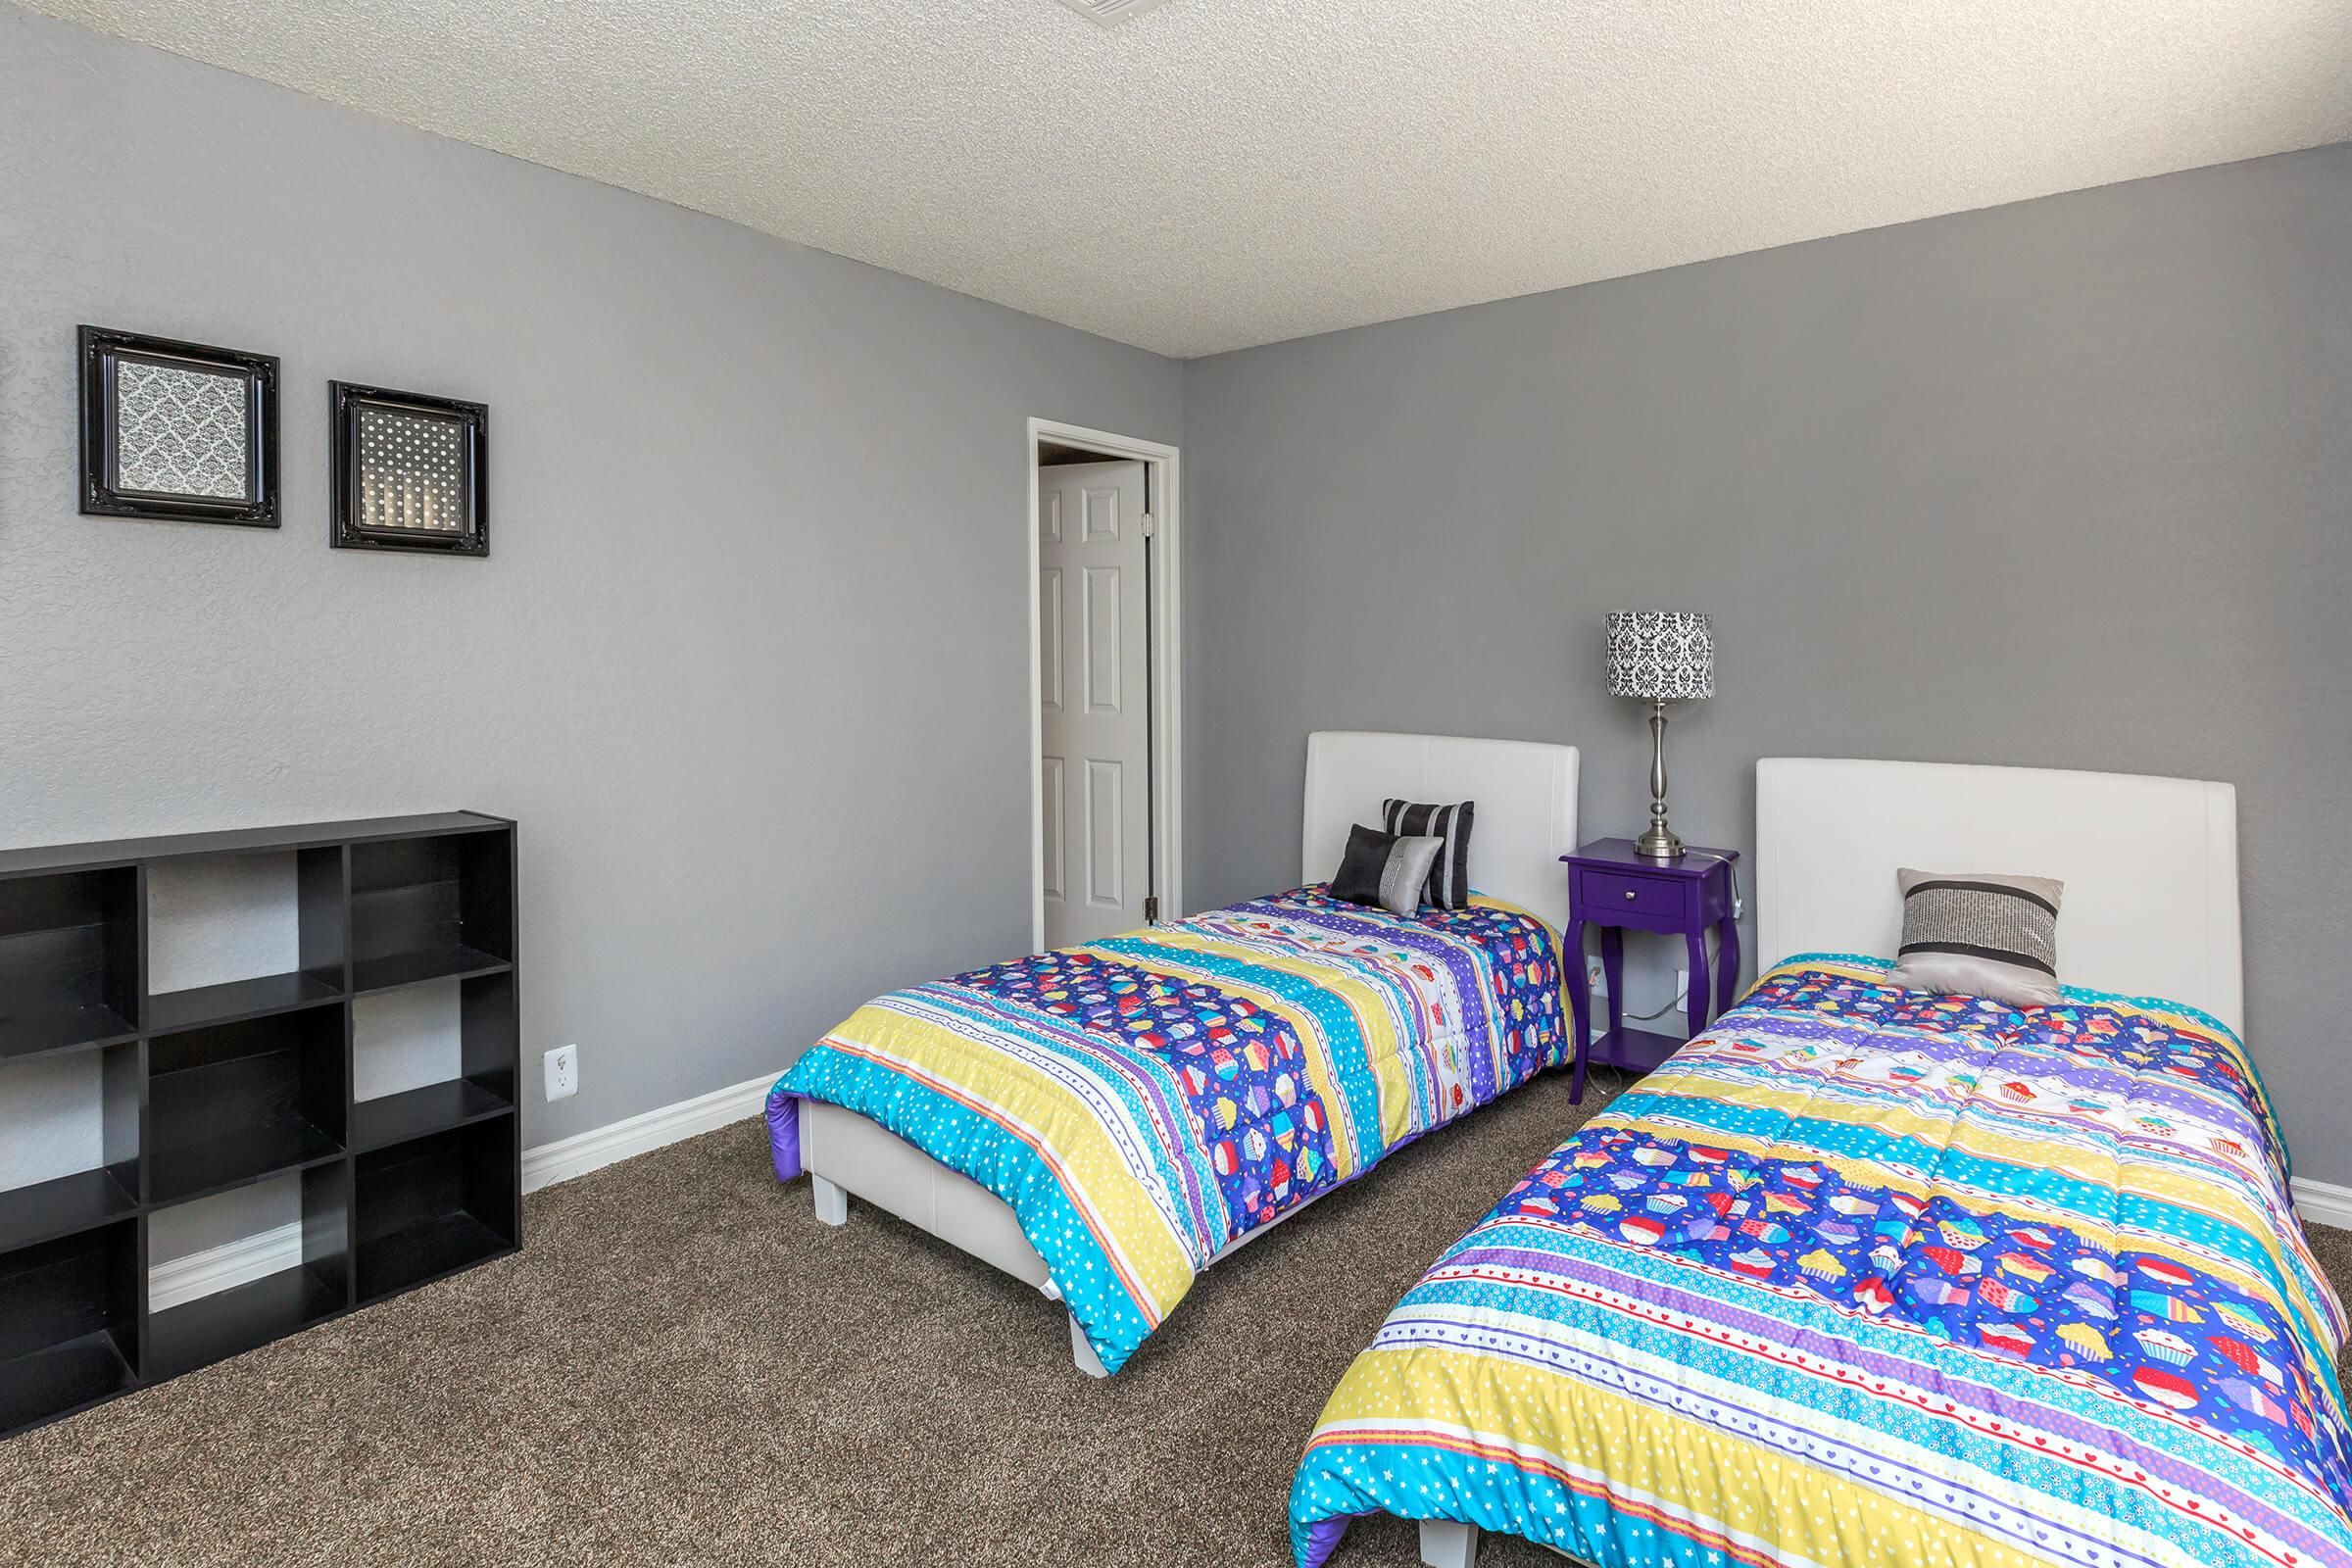 a bedroom with a colorful blanket